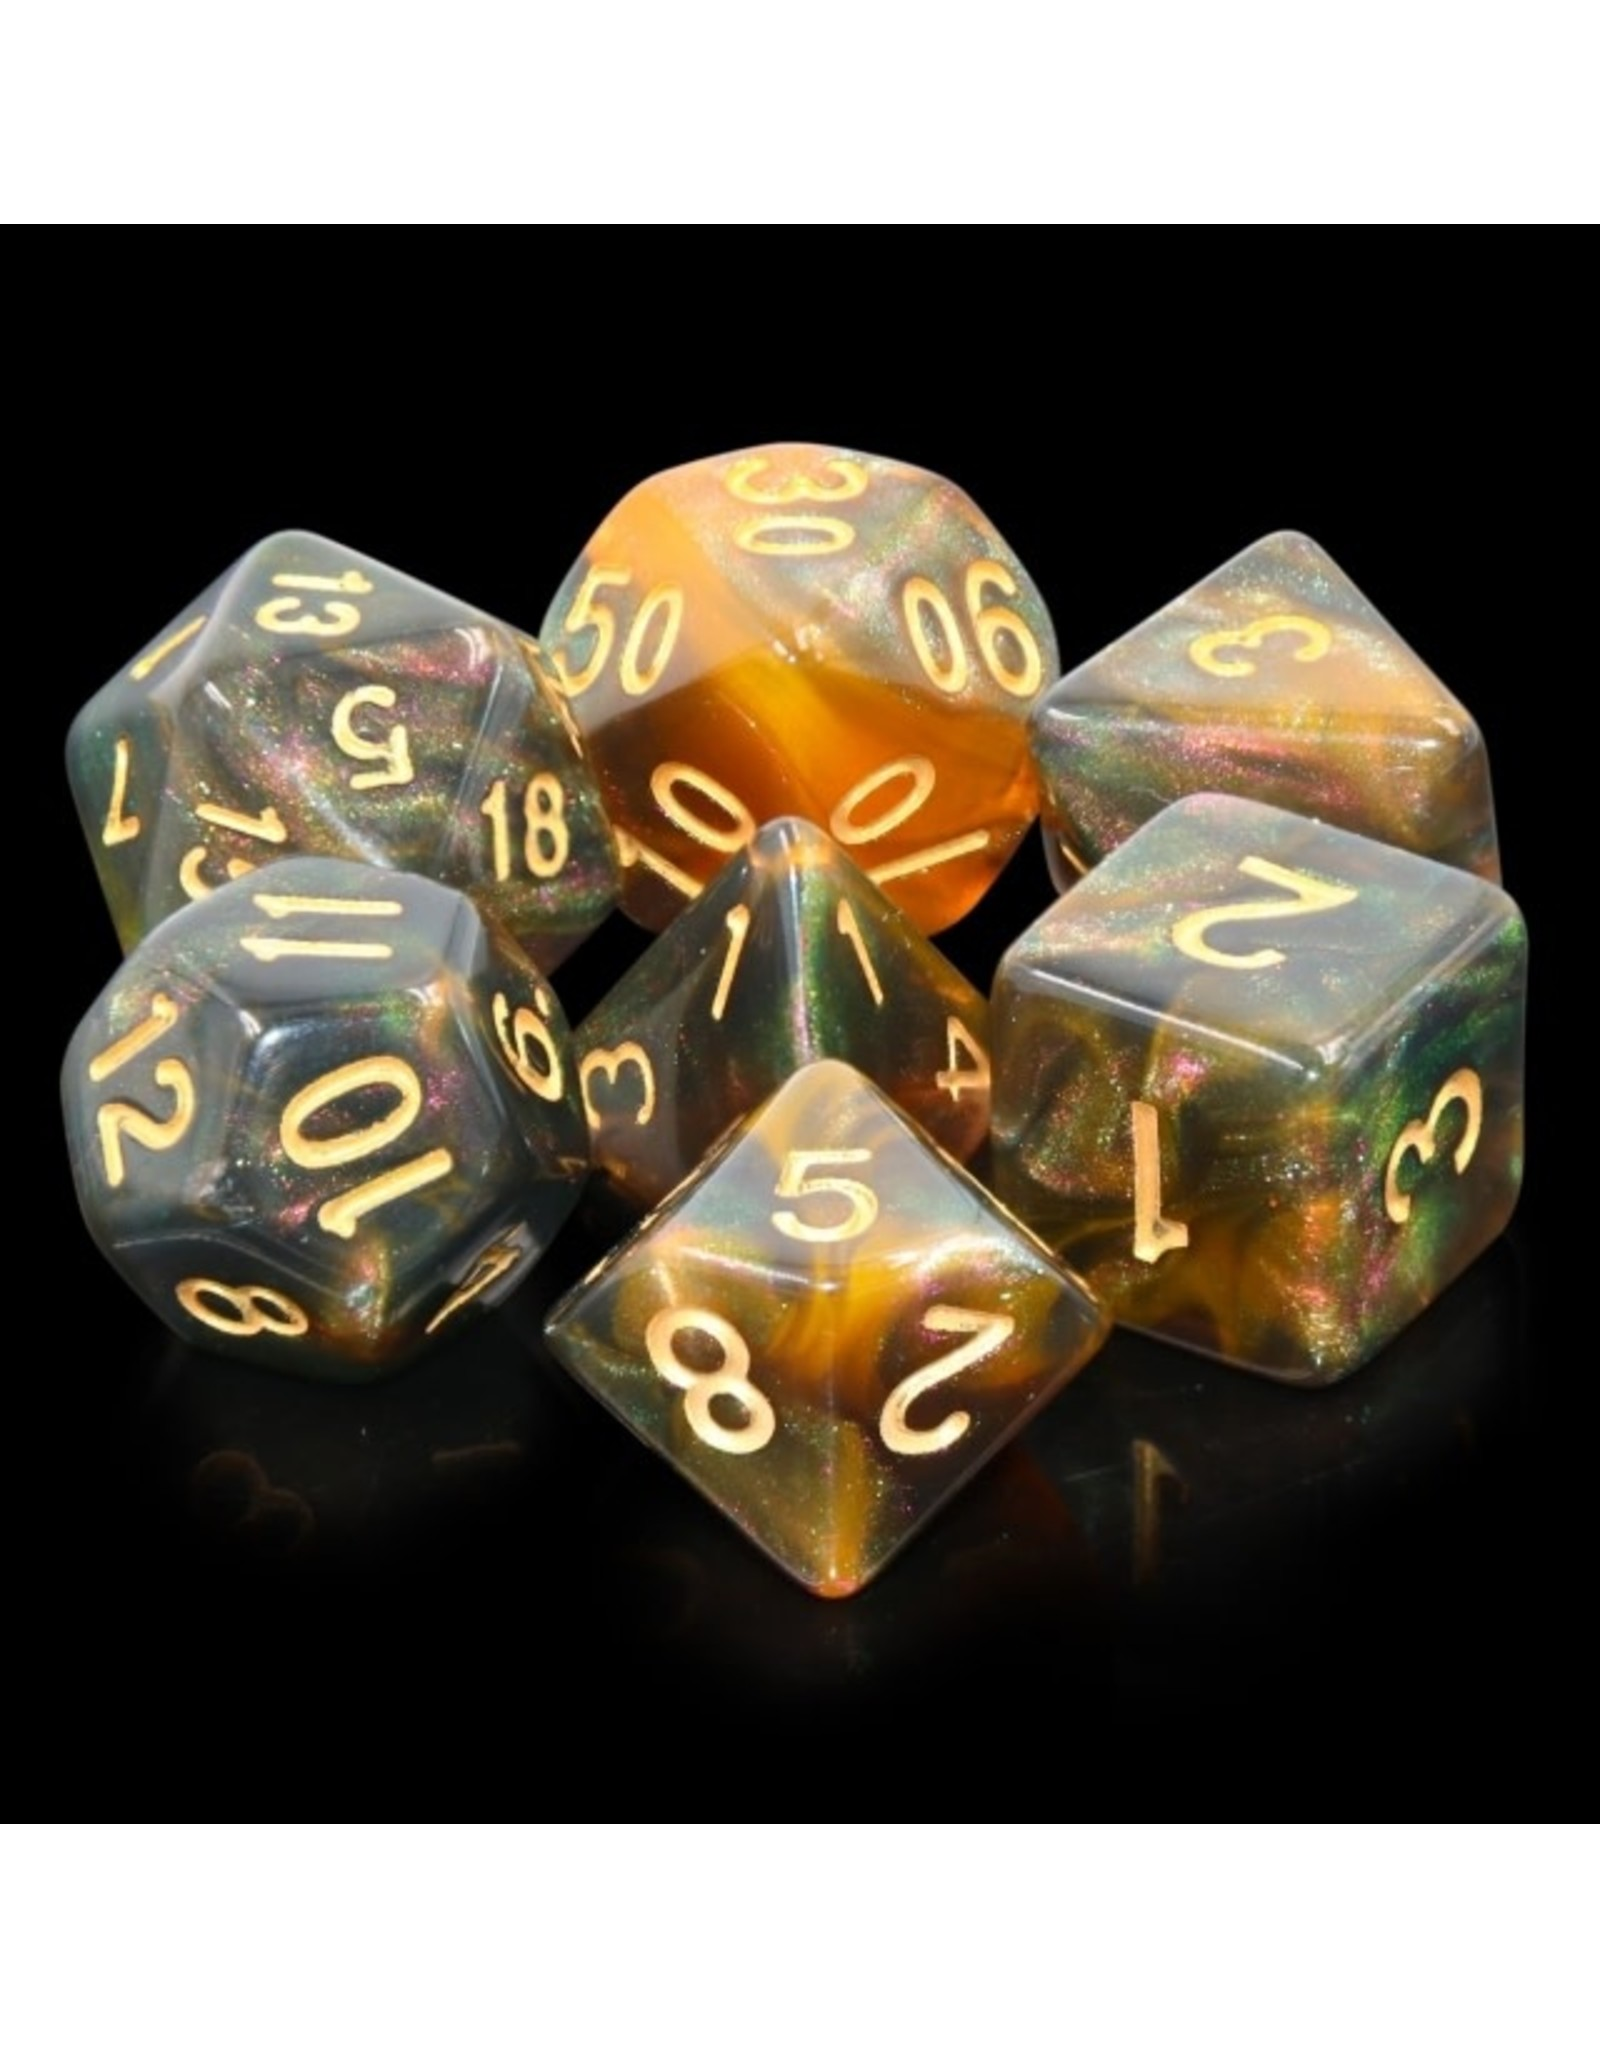 HengDa Dice 7PC RPG DICE - NIGHTINGALE